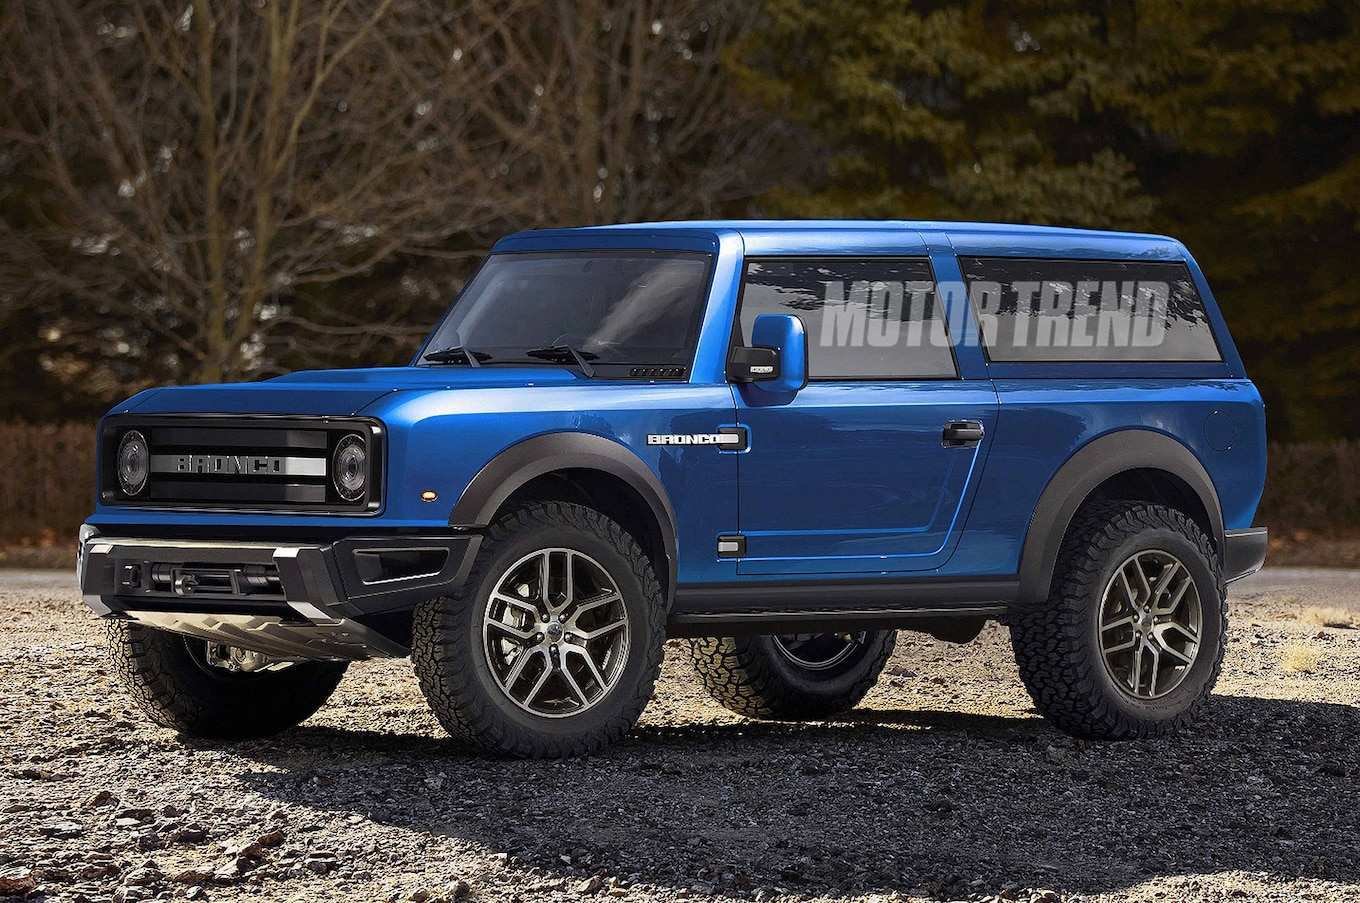 39 All New Images Of 2020 Ford Bronco Specs